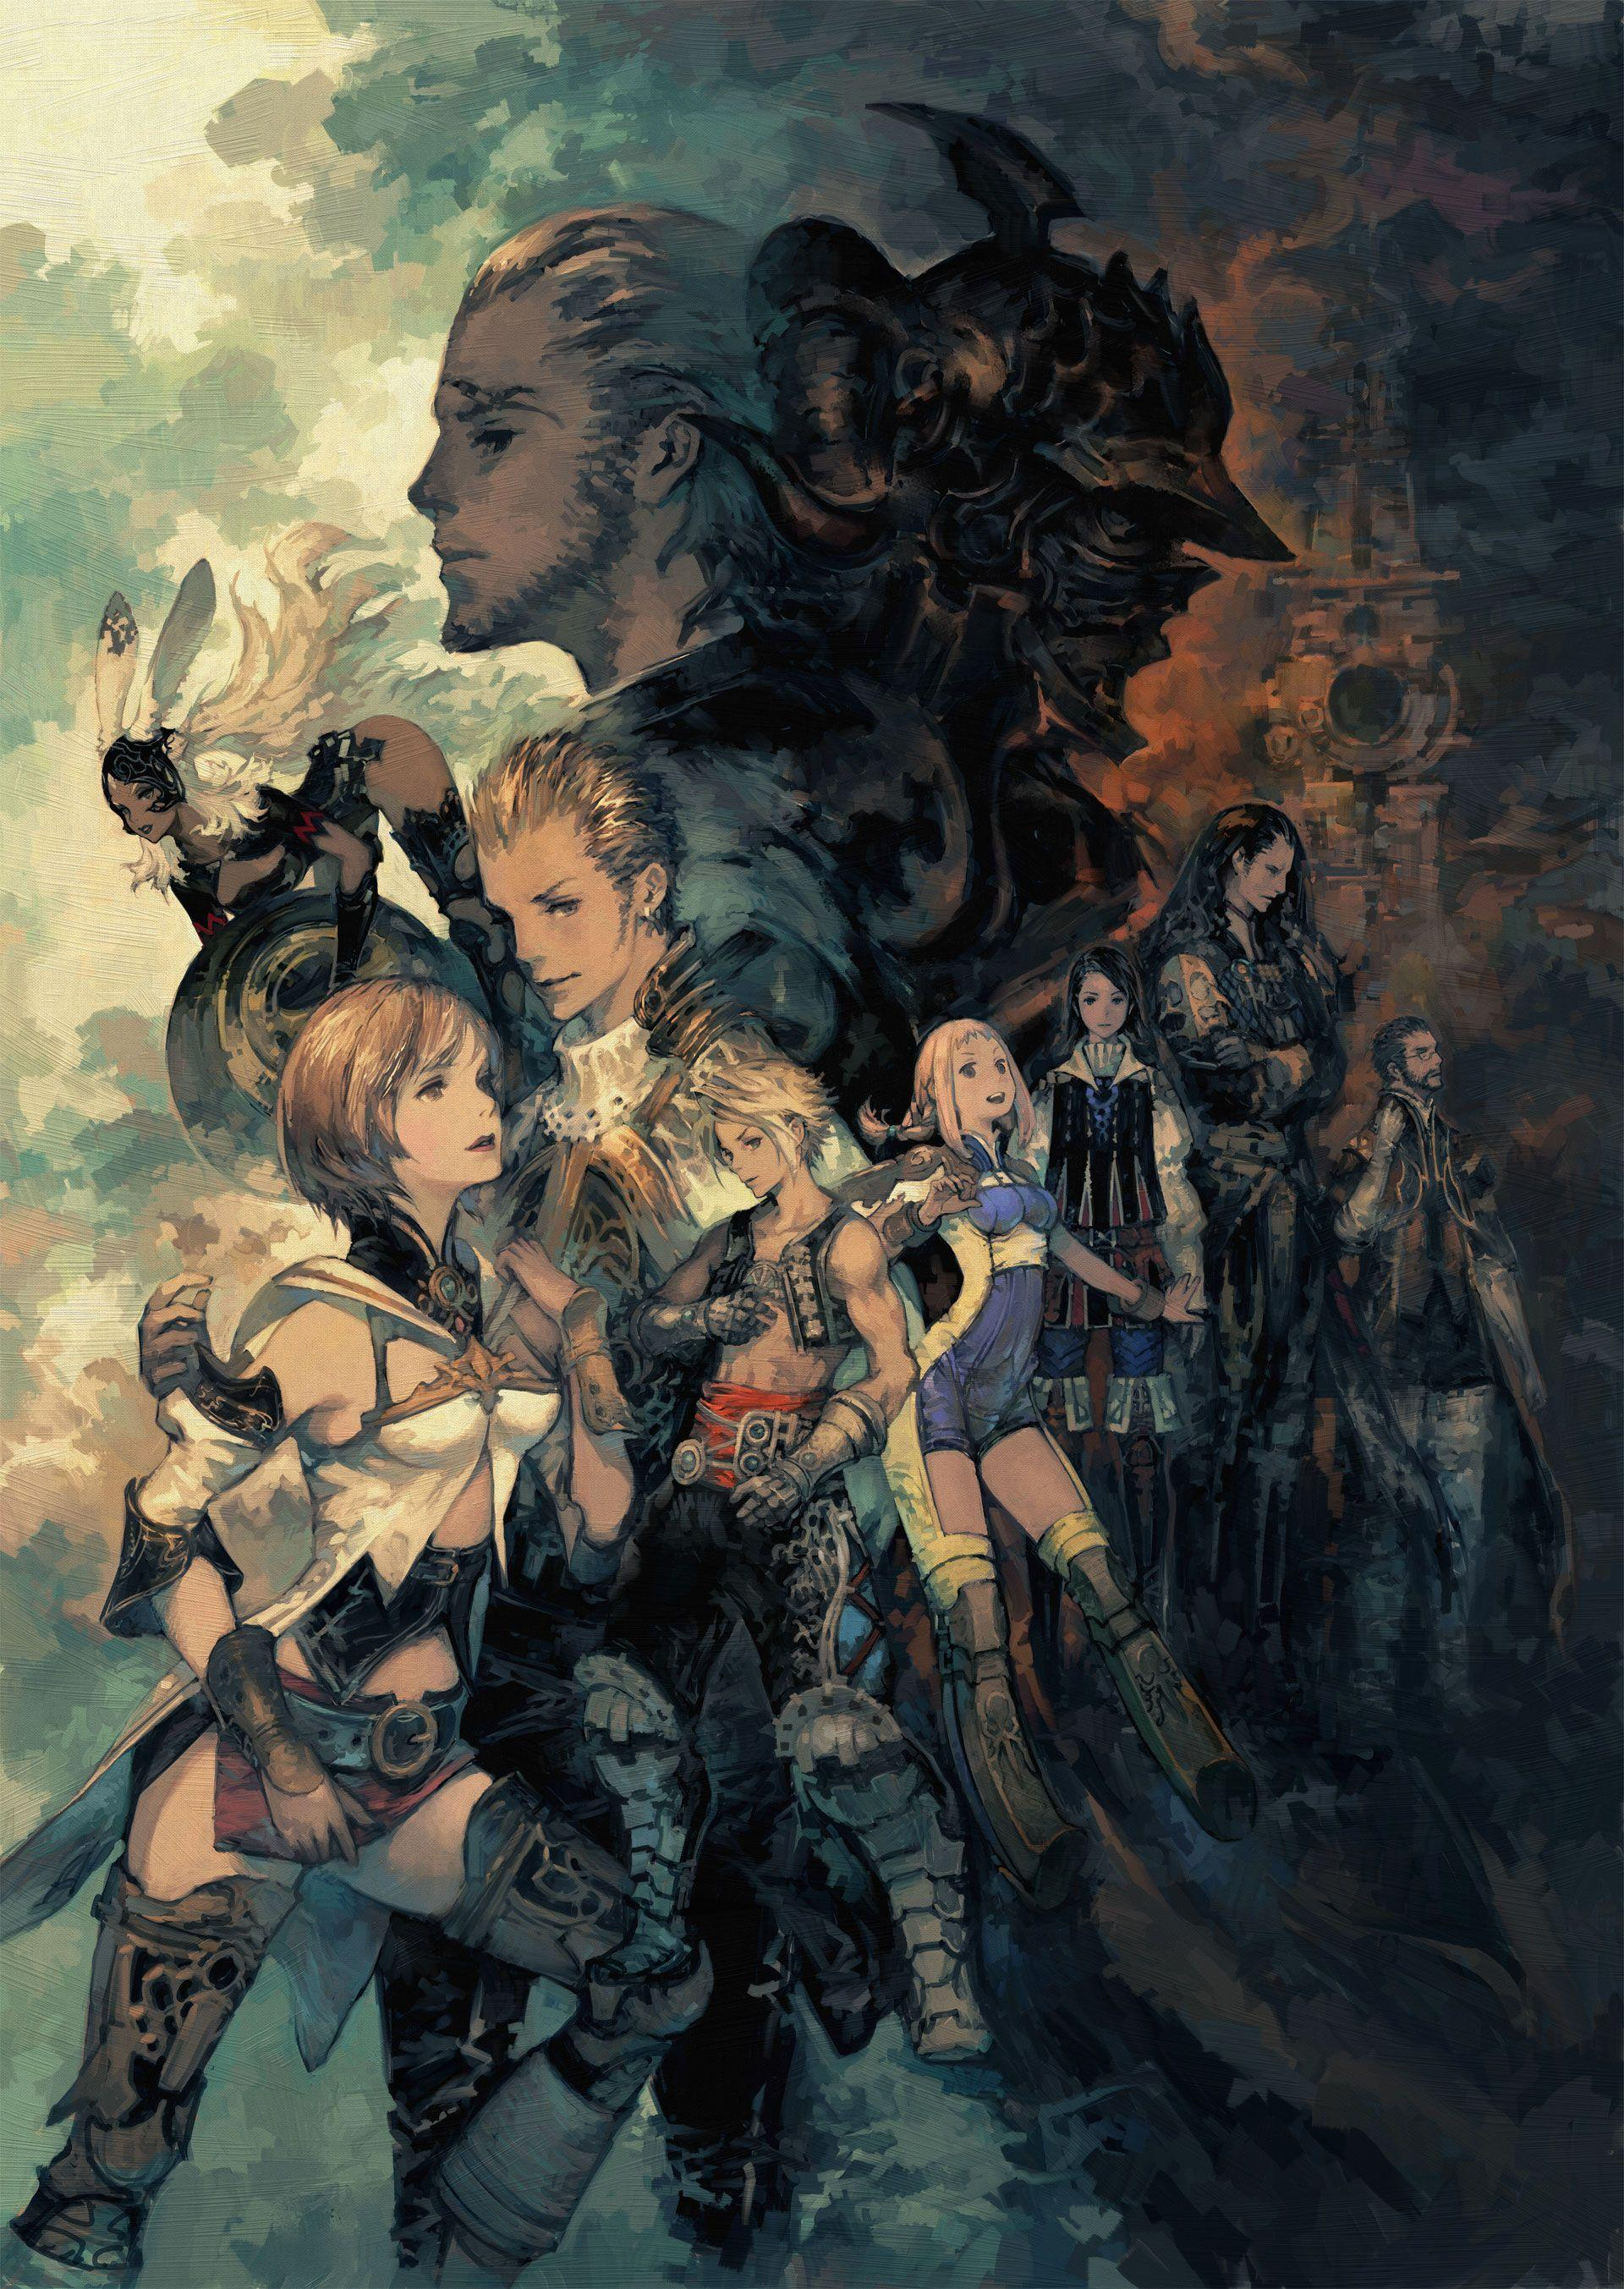 Final Fantasy Xii The Zodiac Age Wallpapers Wallpaper Cave